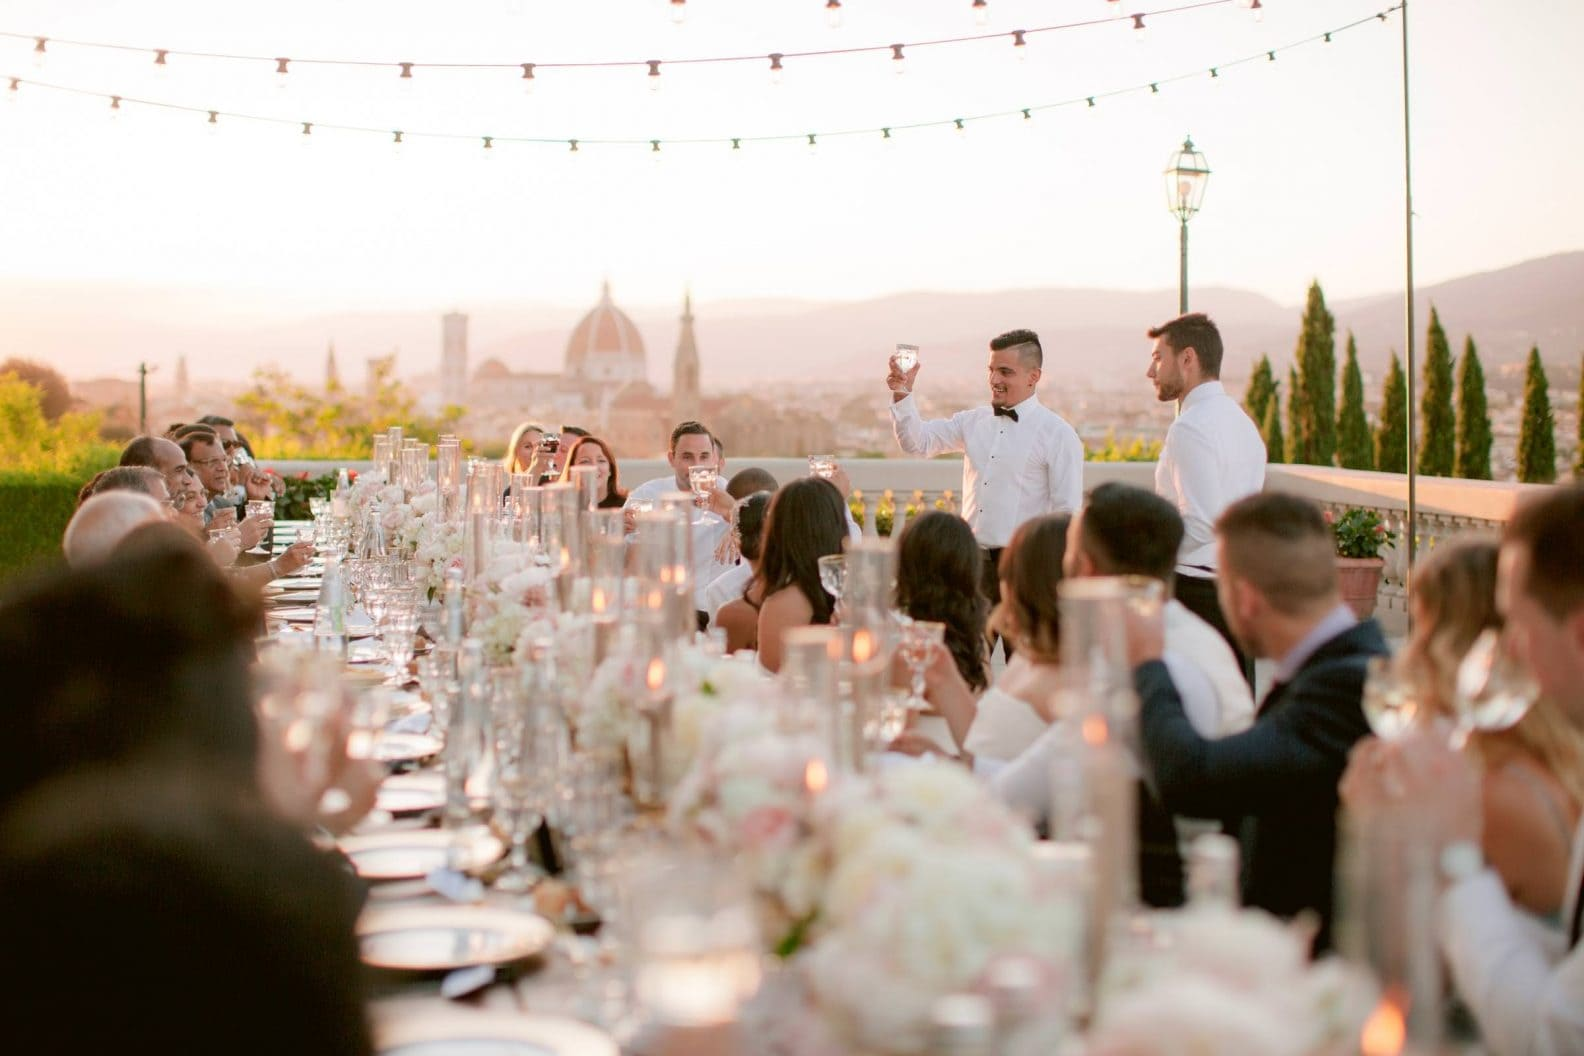 the wedding speeches during the dinner on the terrace of Villa la Vedetta